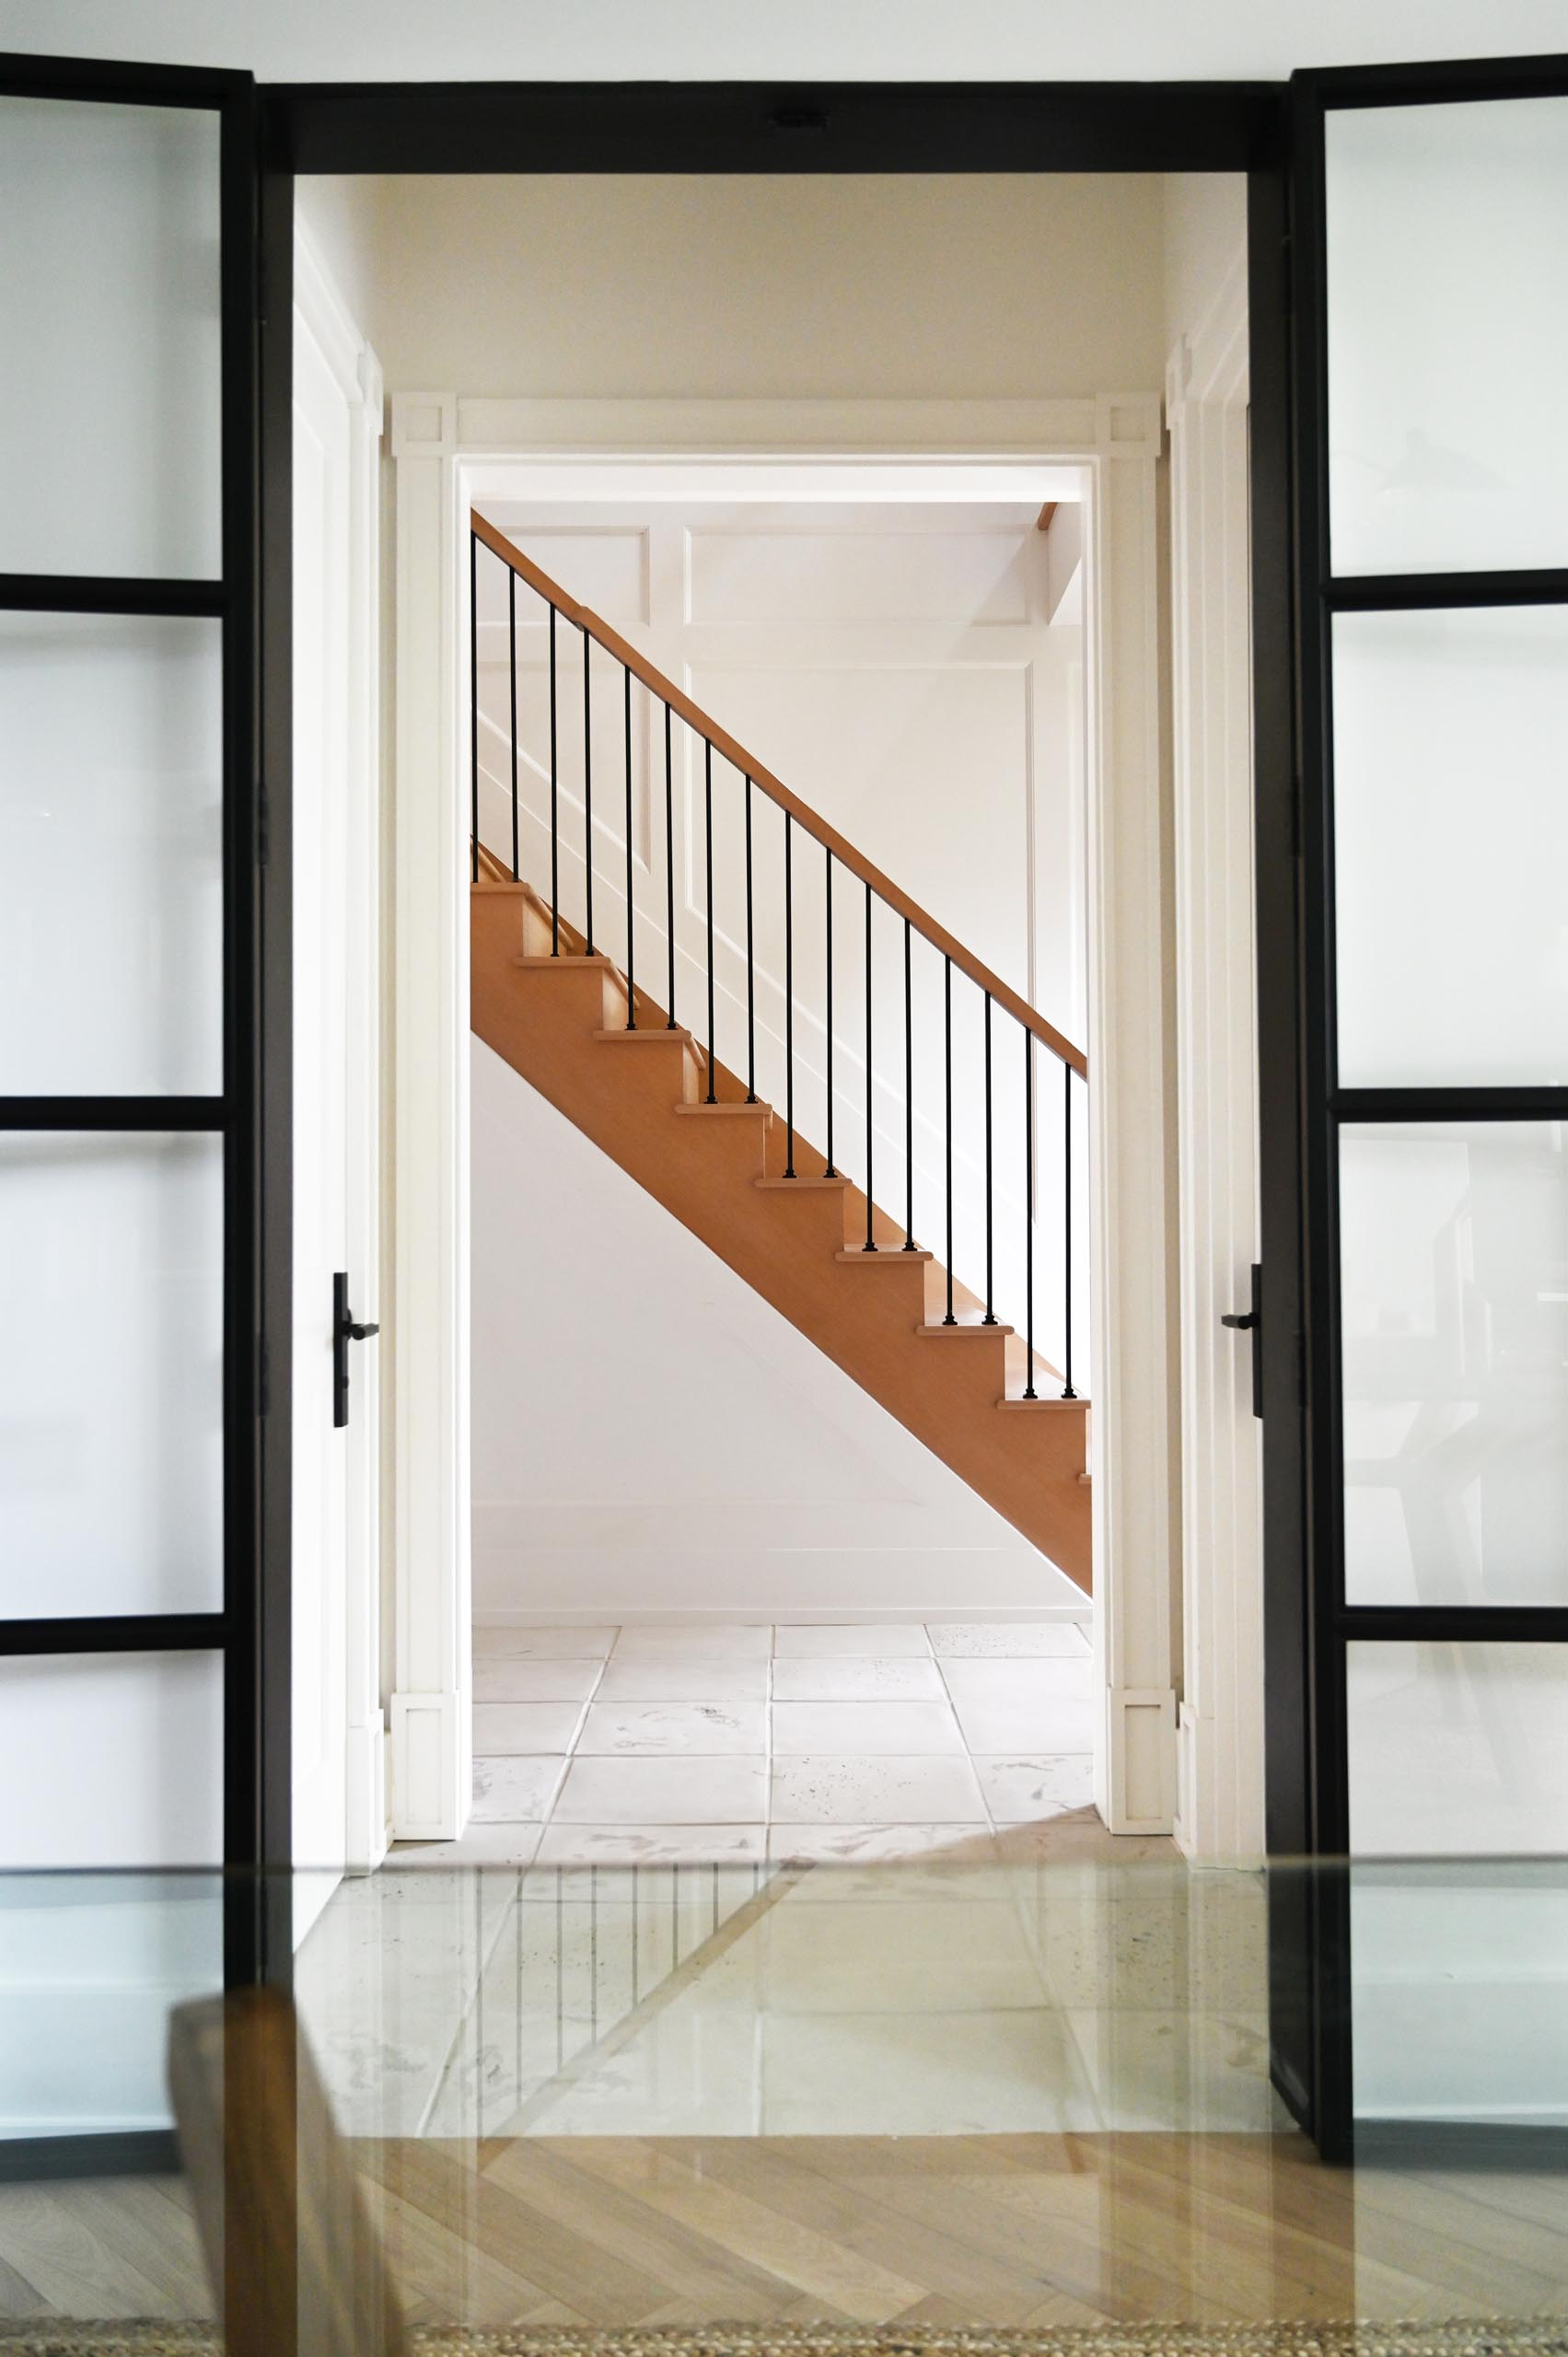 Black metal stair pickets and feature wall paneling, lead up to the second floor, where one is met with a catwalk overlooking the dining and kitchen space below.